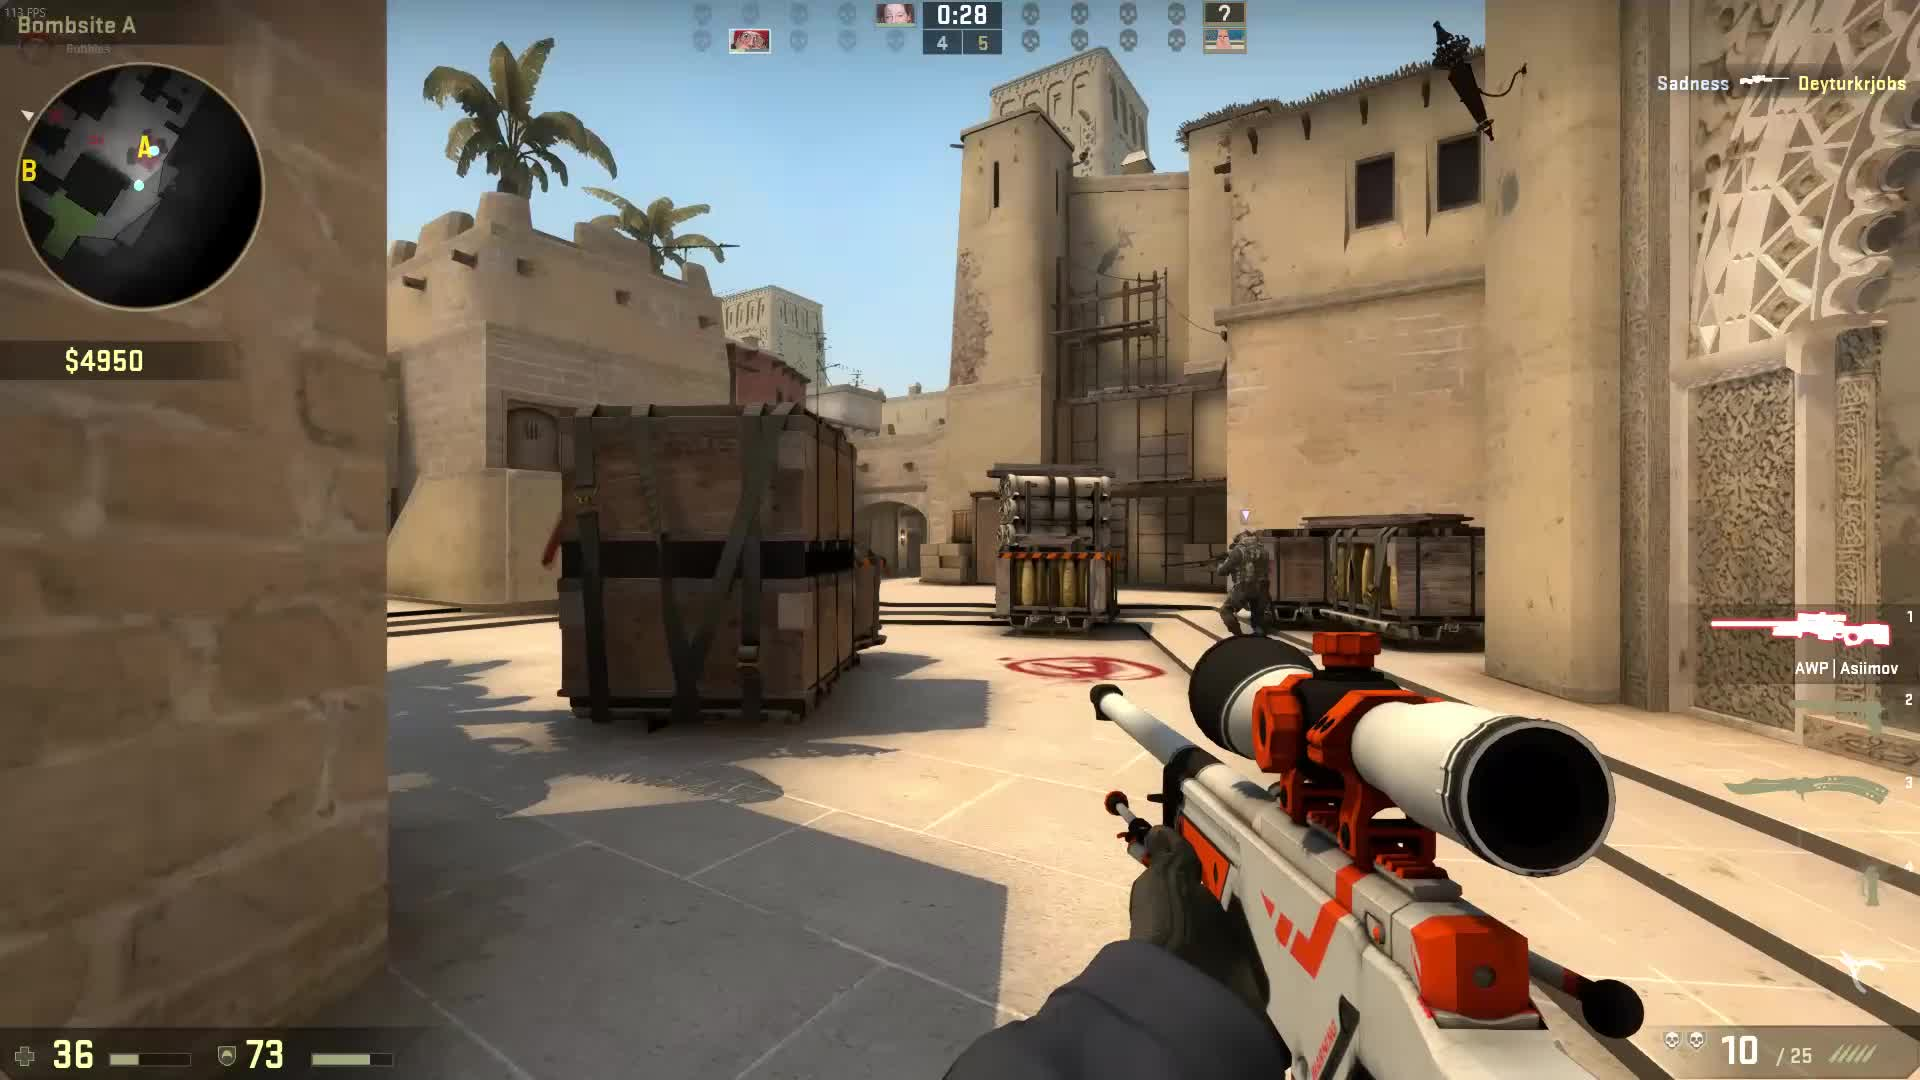 Counter-Strike Global Offensive 2 17 2018 6 44 55 PM (3) GIFs